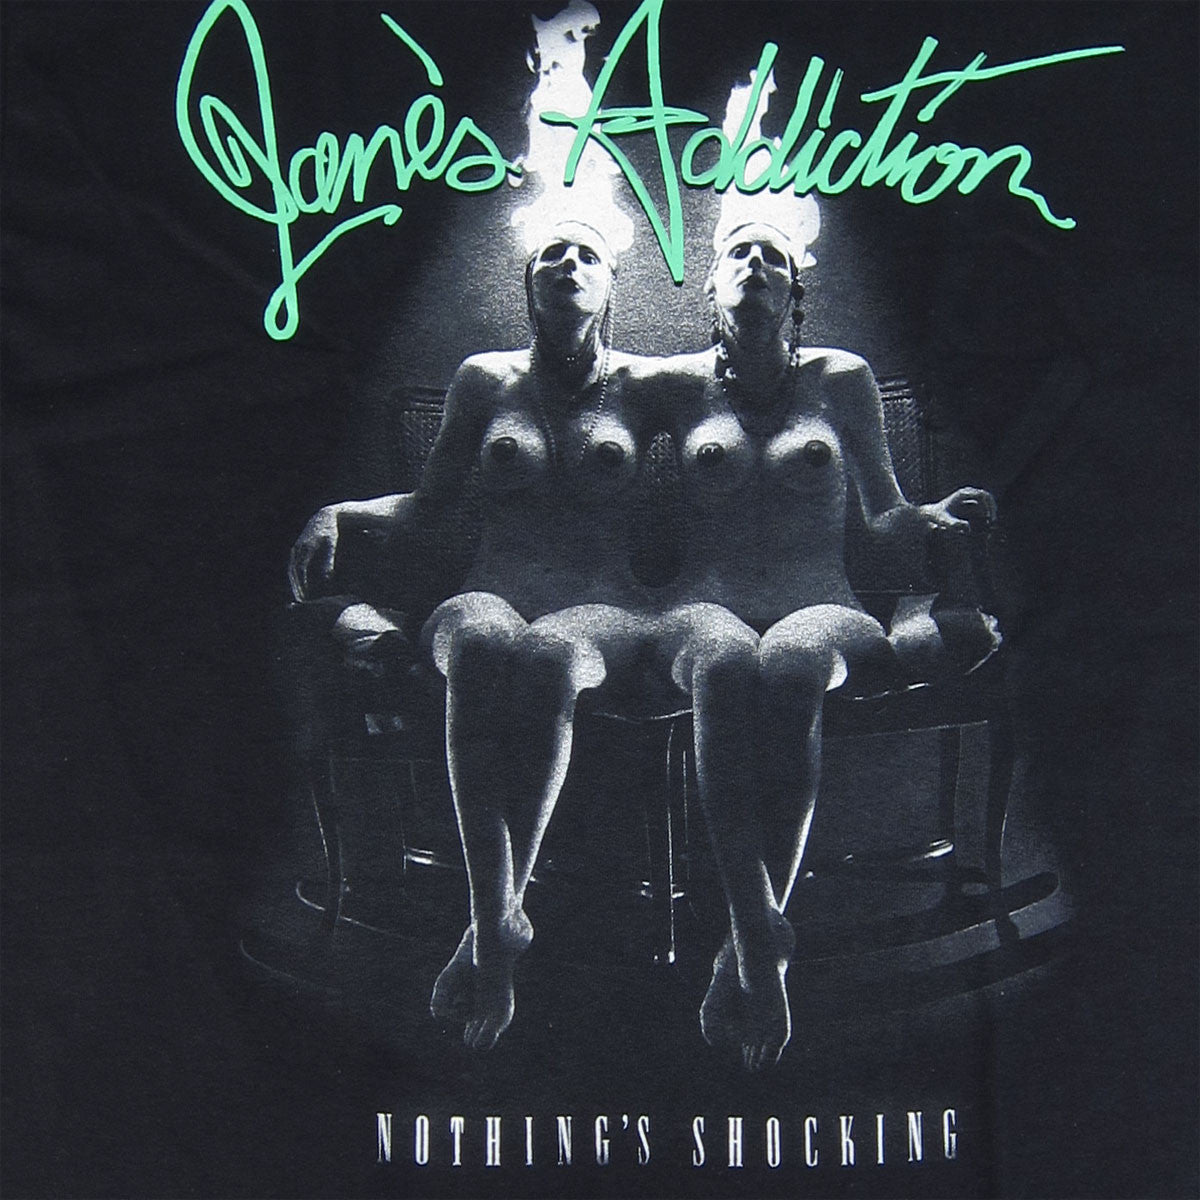 Janes Addiction: Nothing Shocking Shirt - Black detail